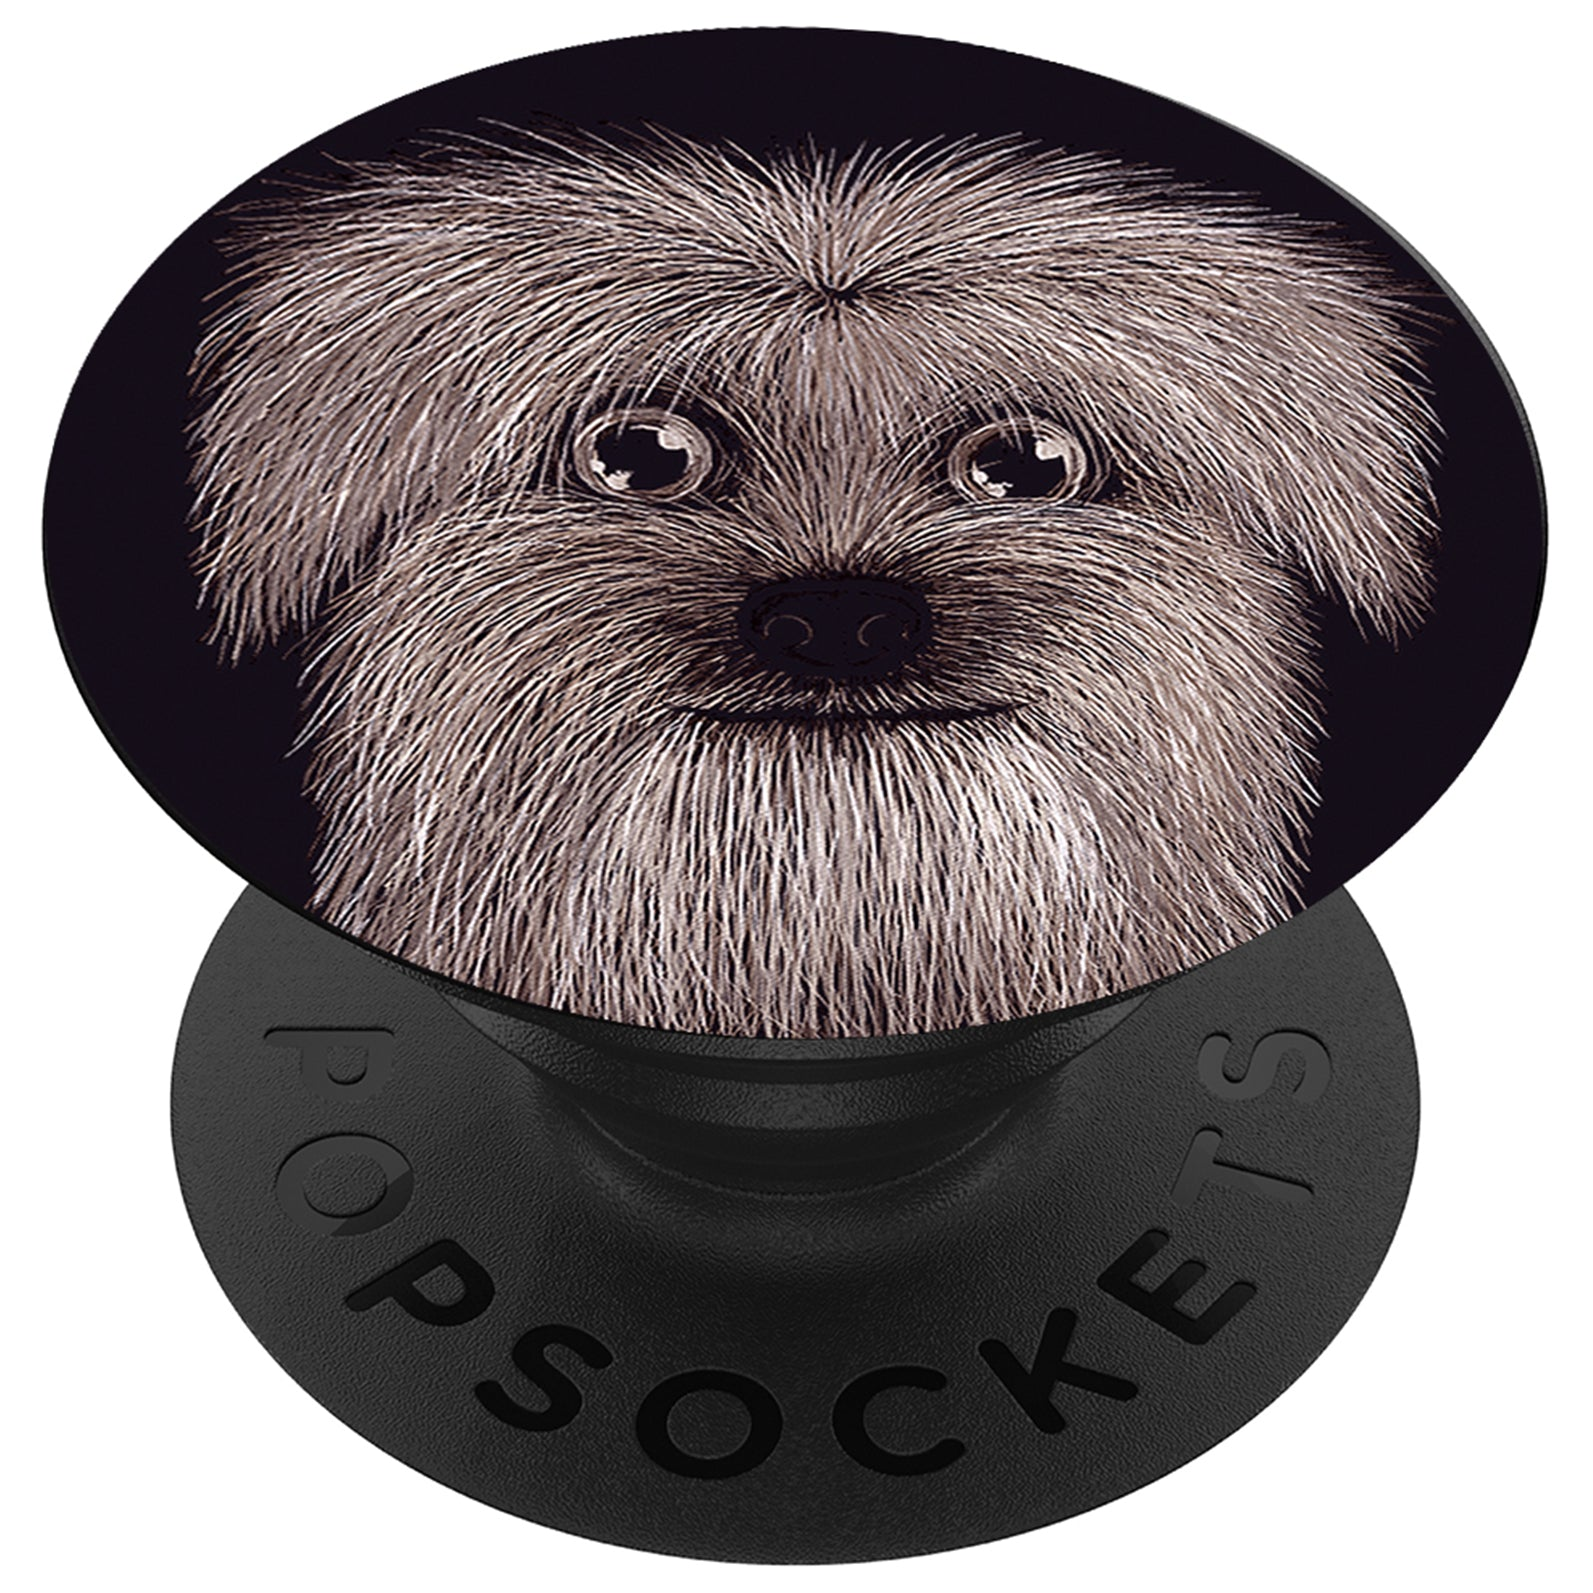 Dog Person for Life by Rohan, PopSockets